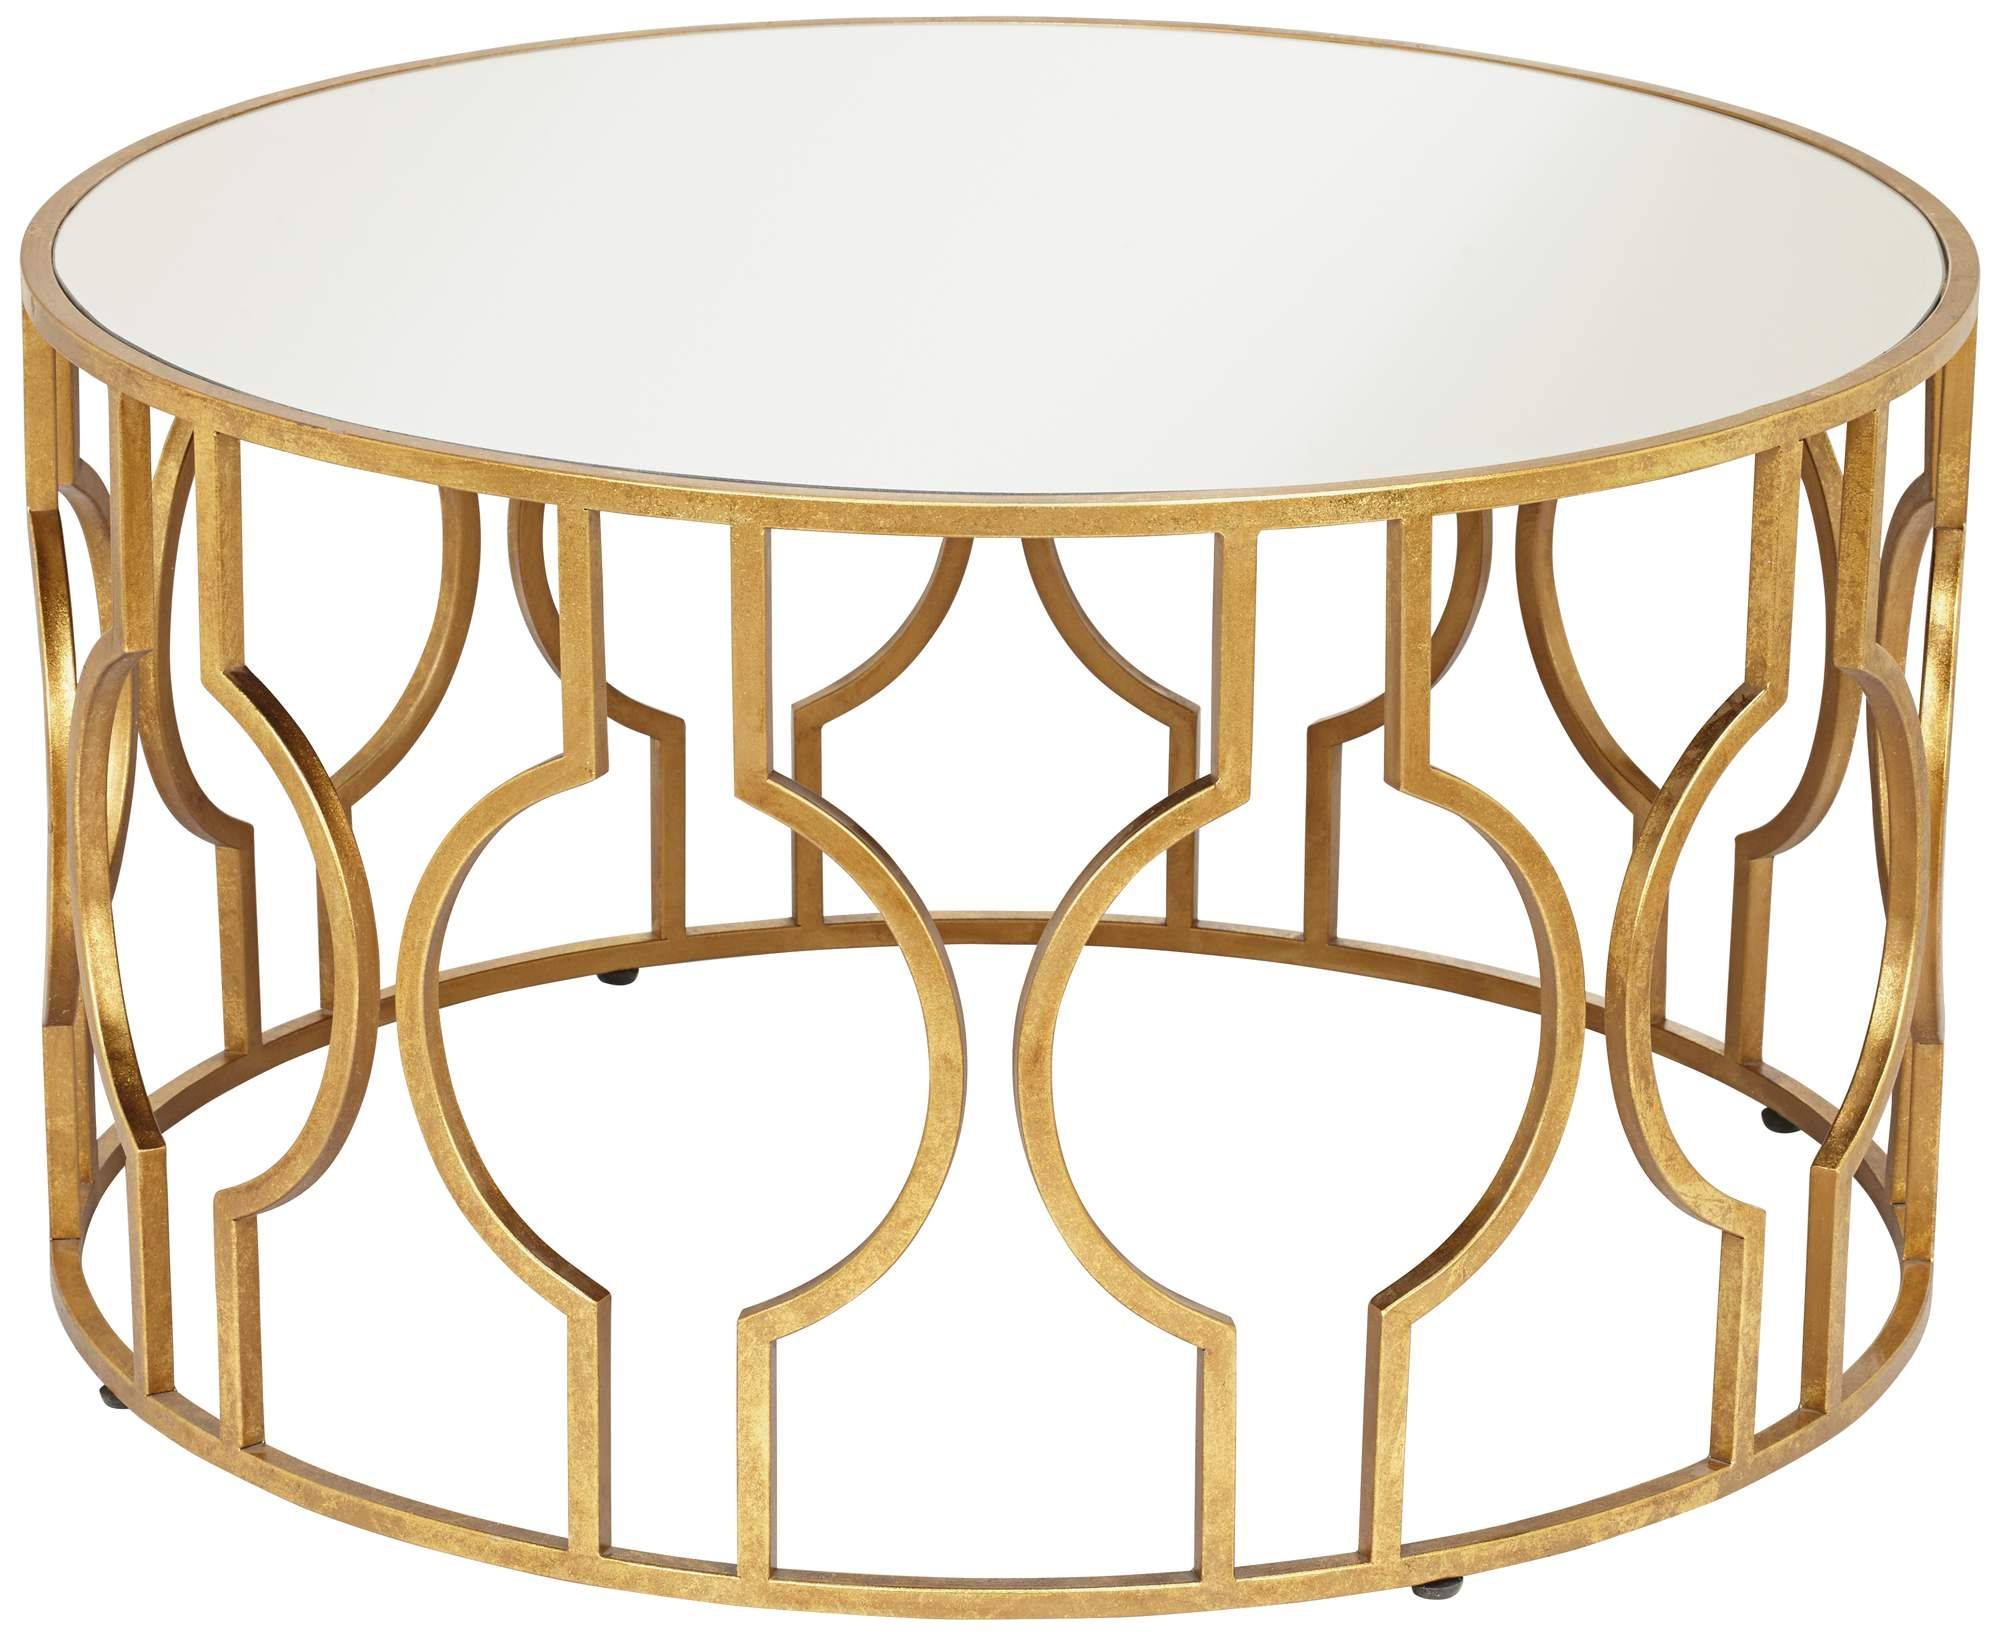 The Fara Collection Offers Beautiful Openwork Table